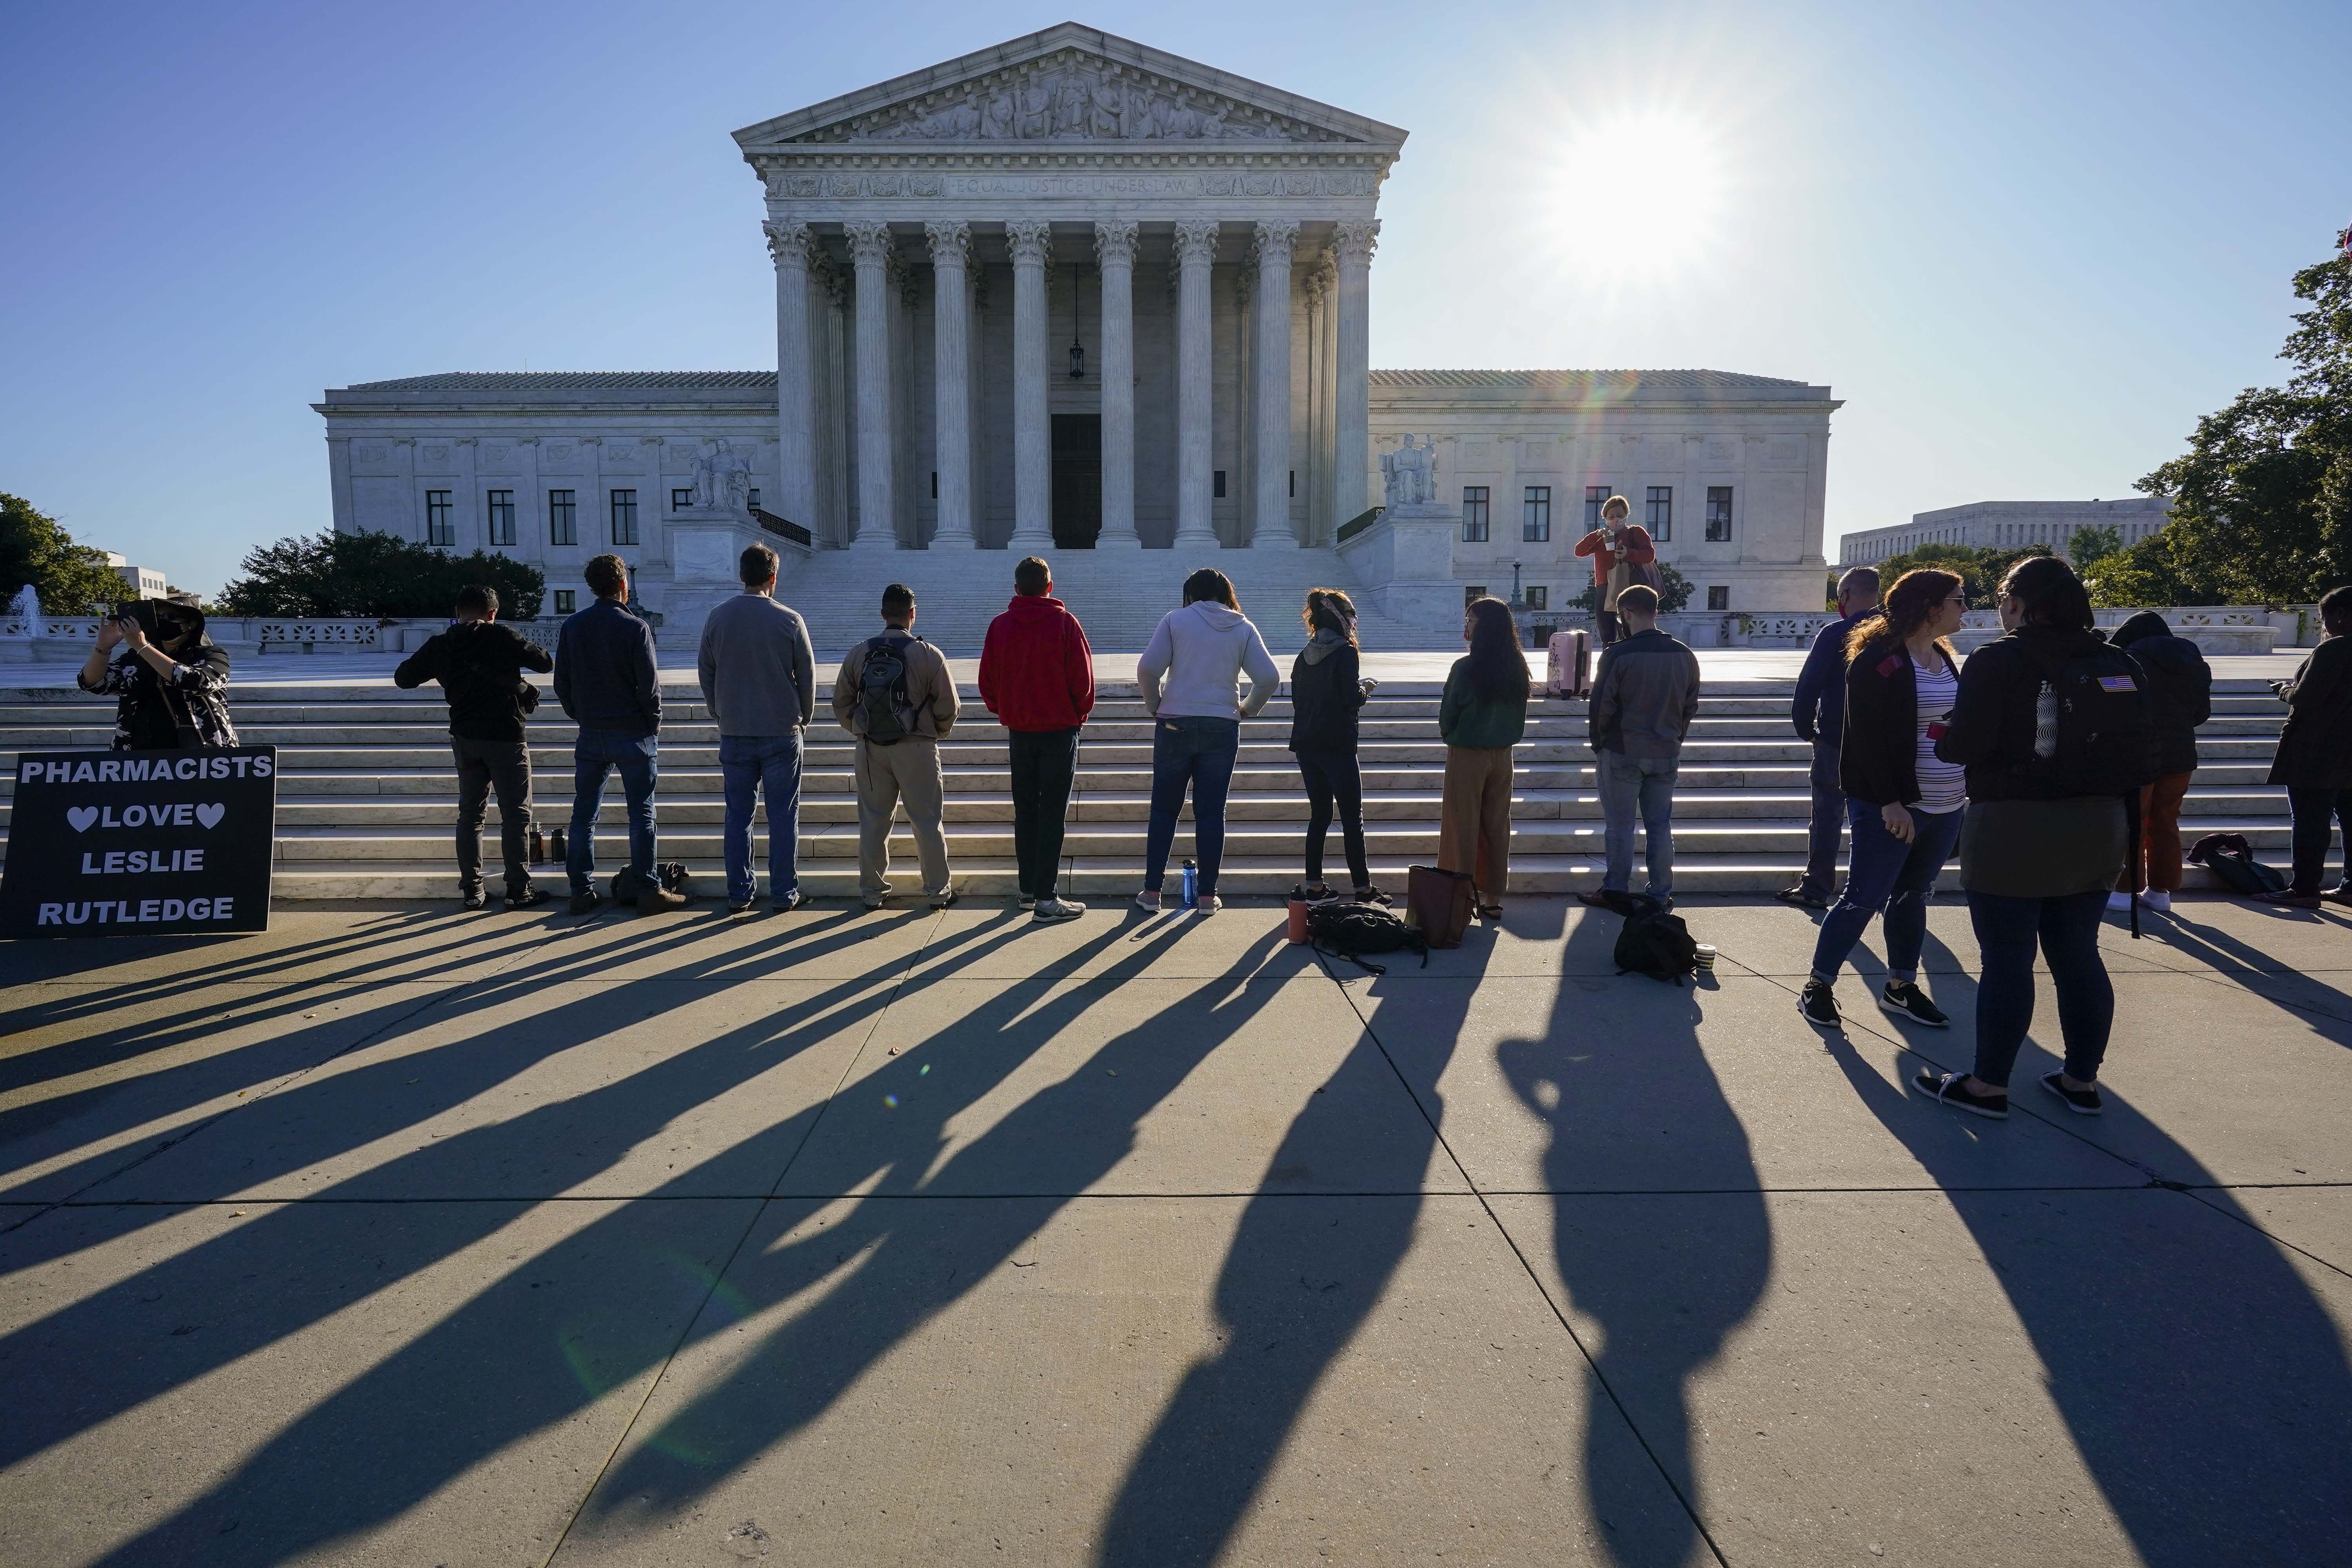 """Anti-abortion activists with """"Bound 4 Life"""" demonstrate at the Supreme Court in Washington, Monday, Oct. 5, 2020, as the justices begin a new term without the late Justice Ruth Bader Ginsburg. (AP Photo/J. Scott Applewhite)"""